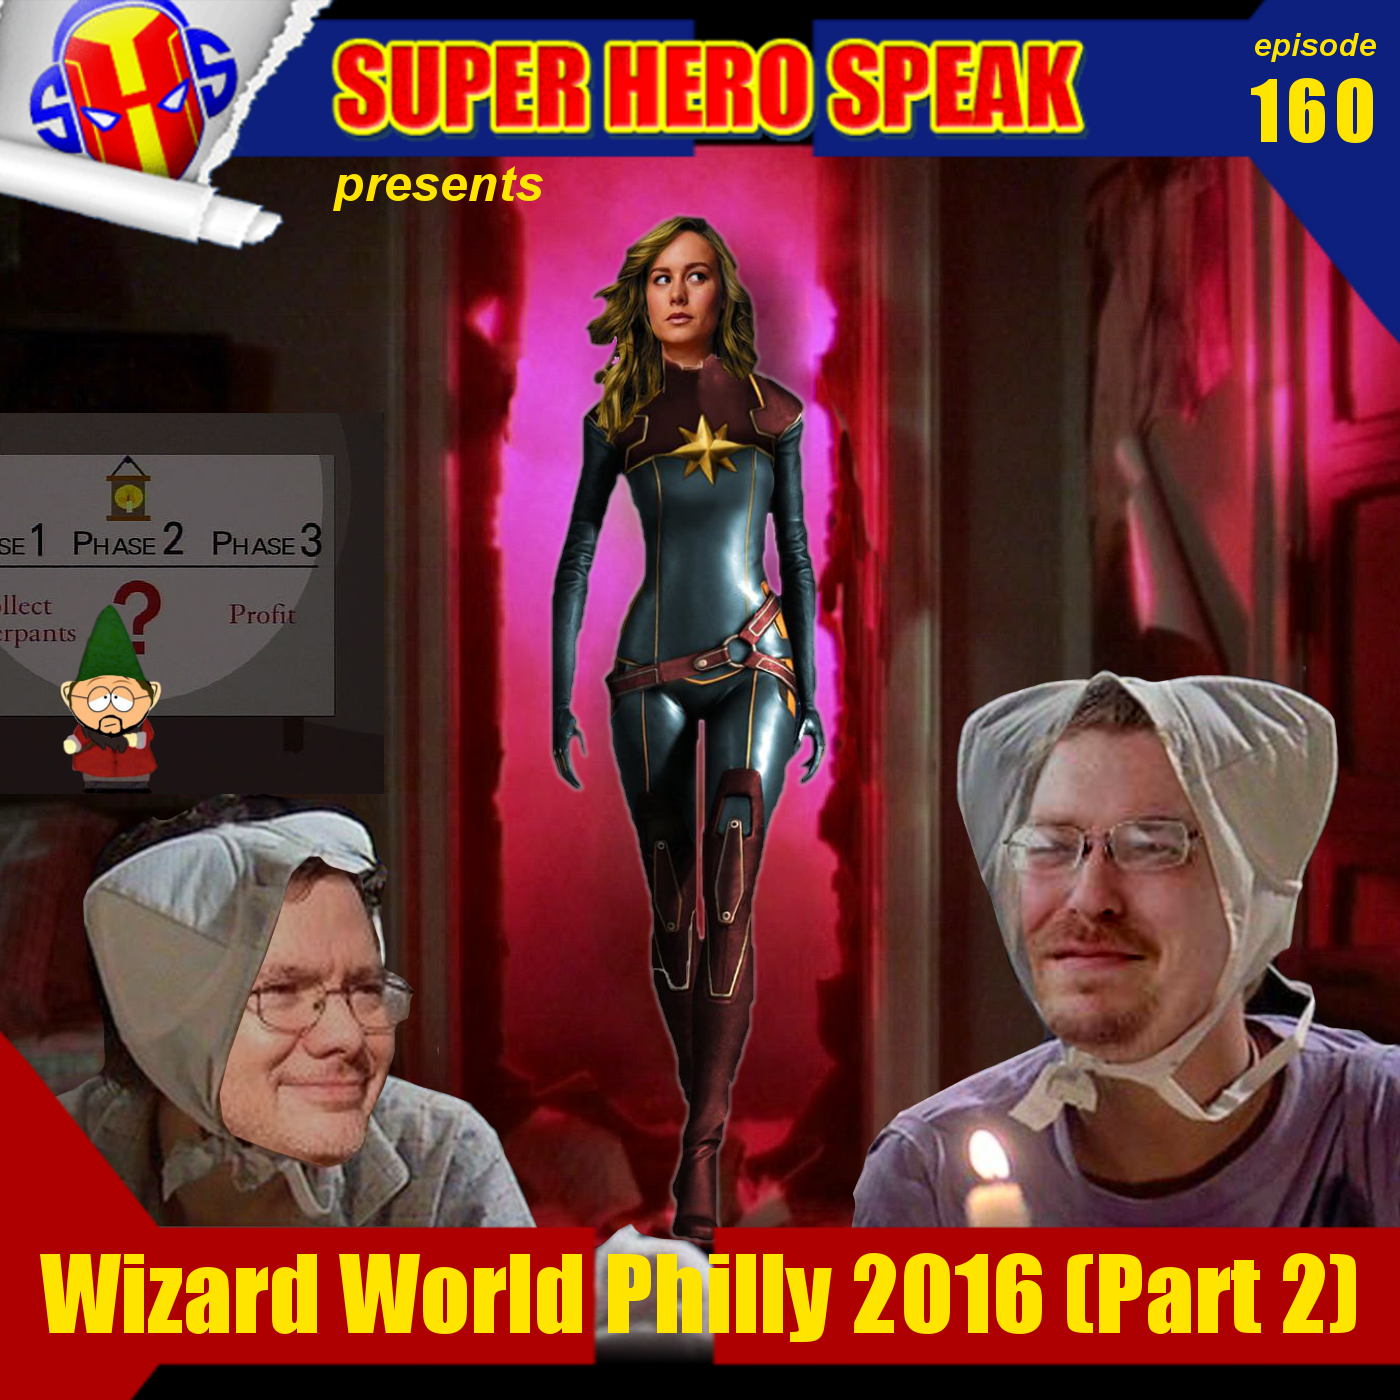 #160: Wizard World Philly 2016 Part 2